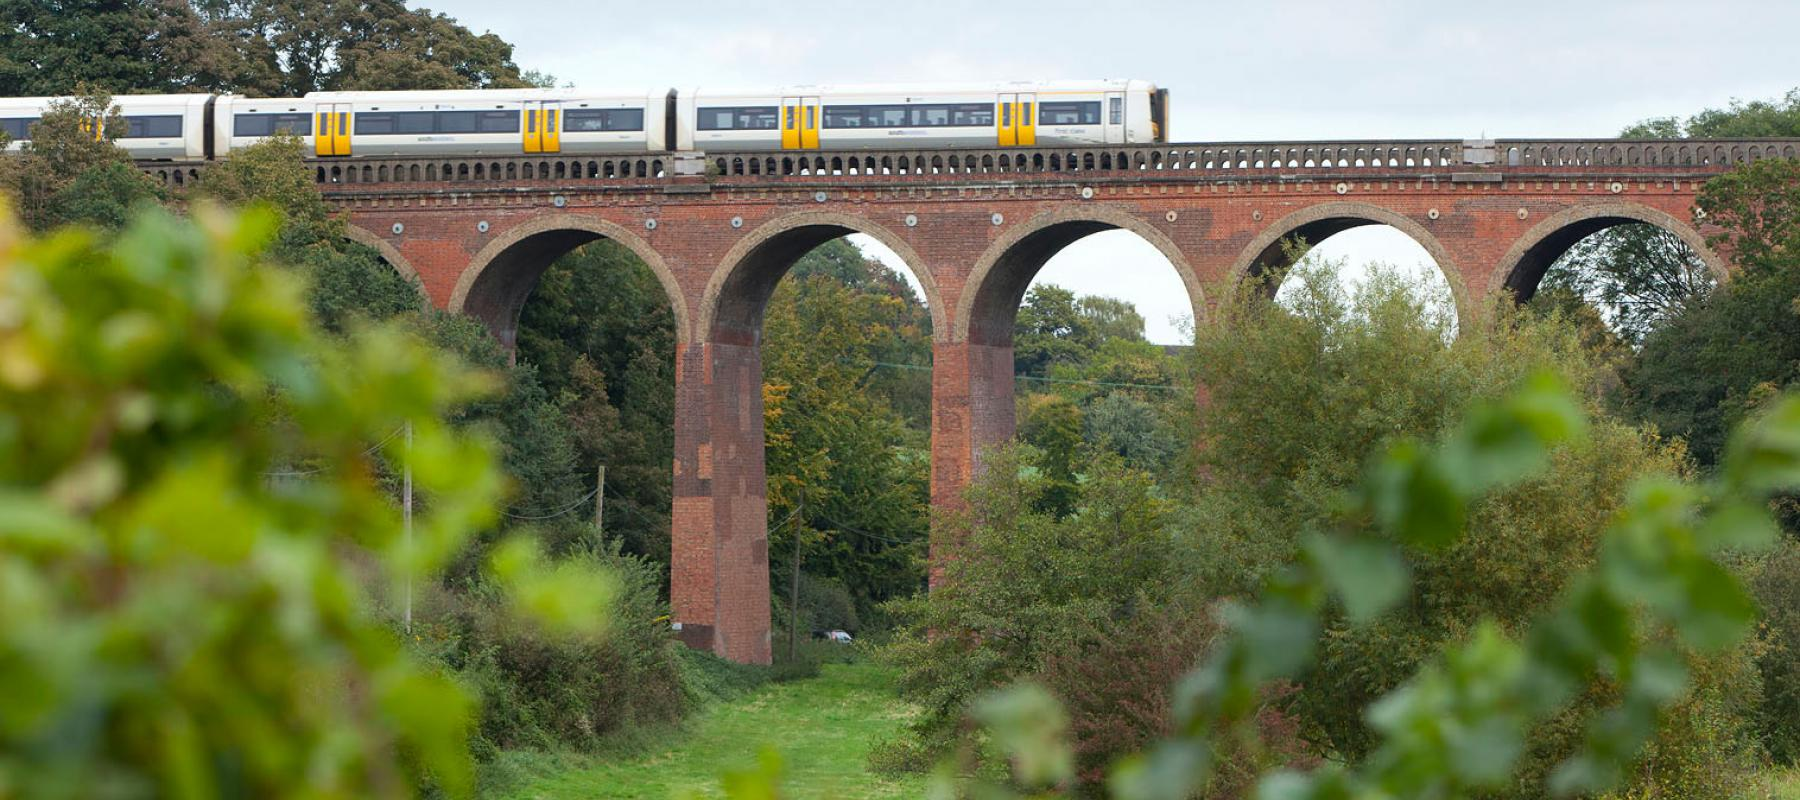 Darent Valley train crossing viaduct